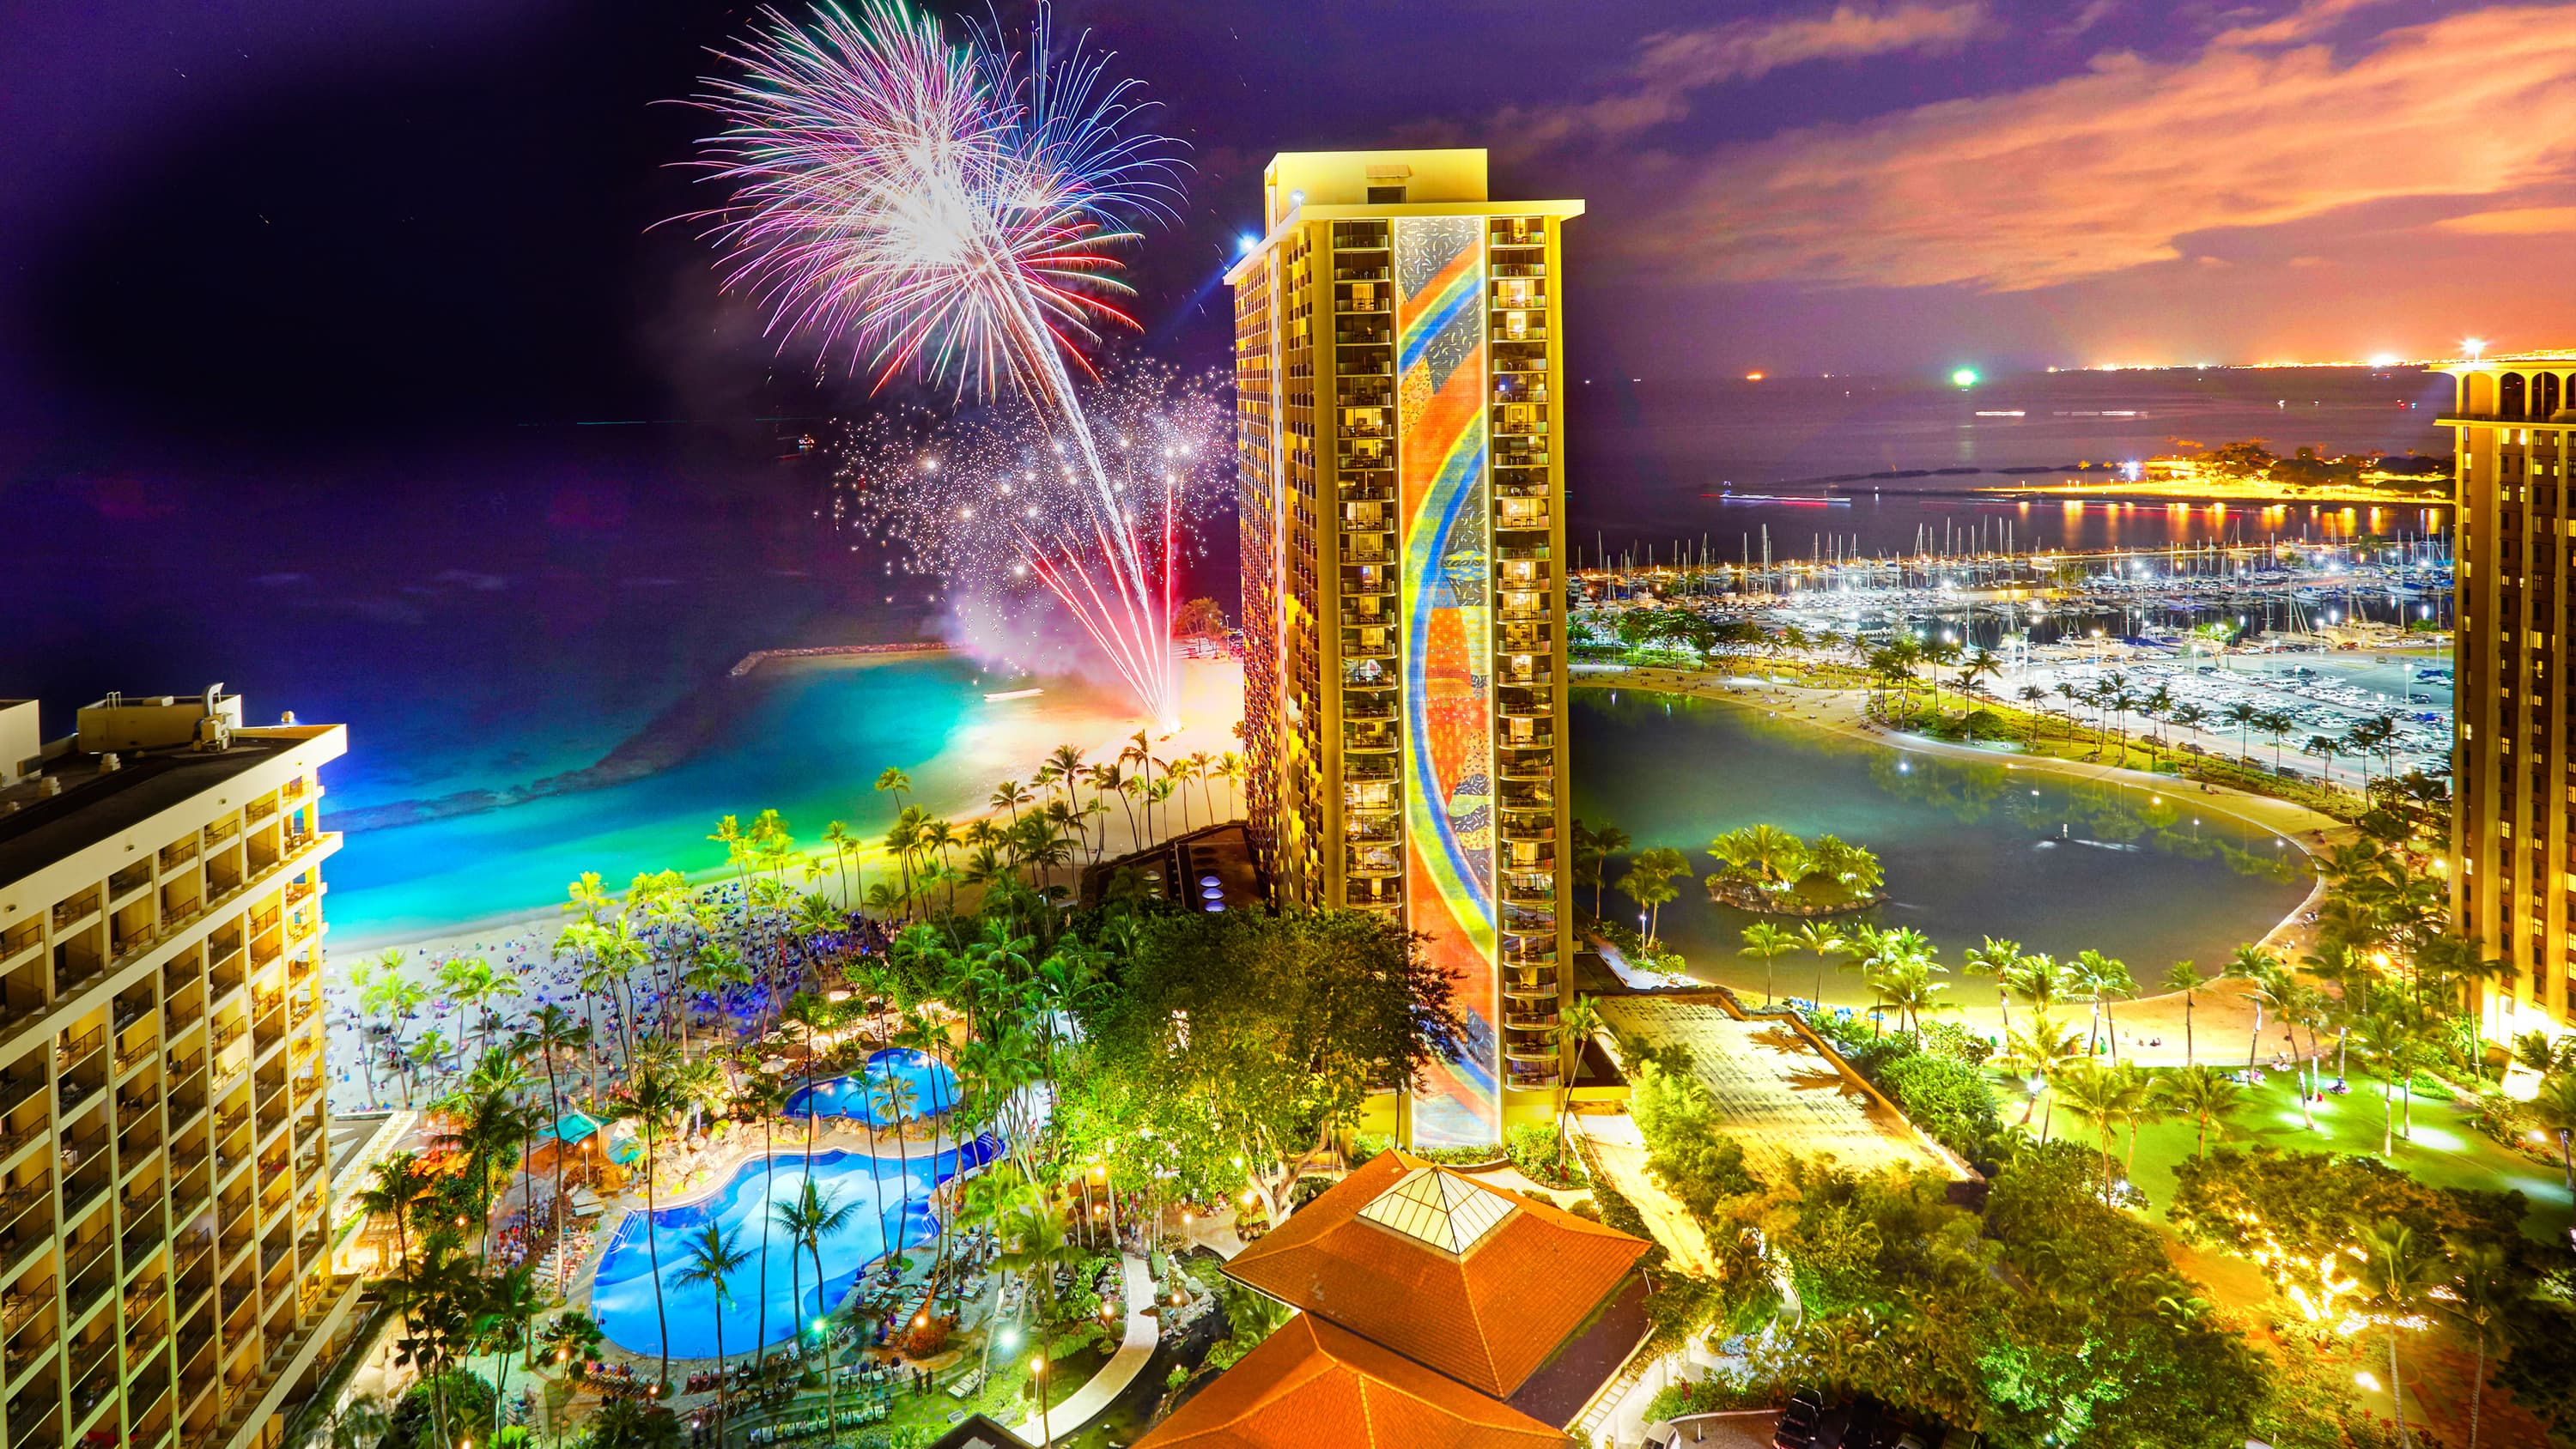 New Year's Eve at Hilton Hawaiian Village